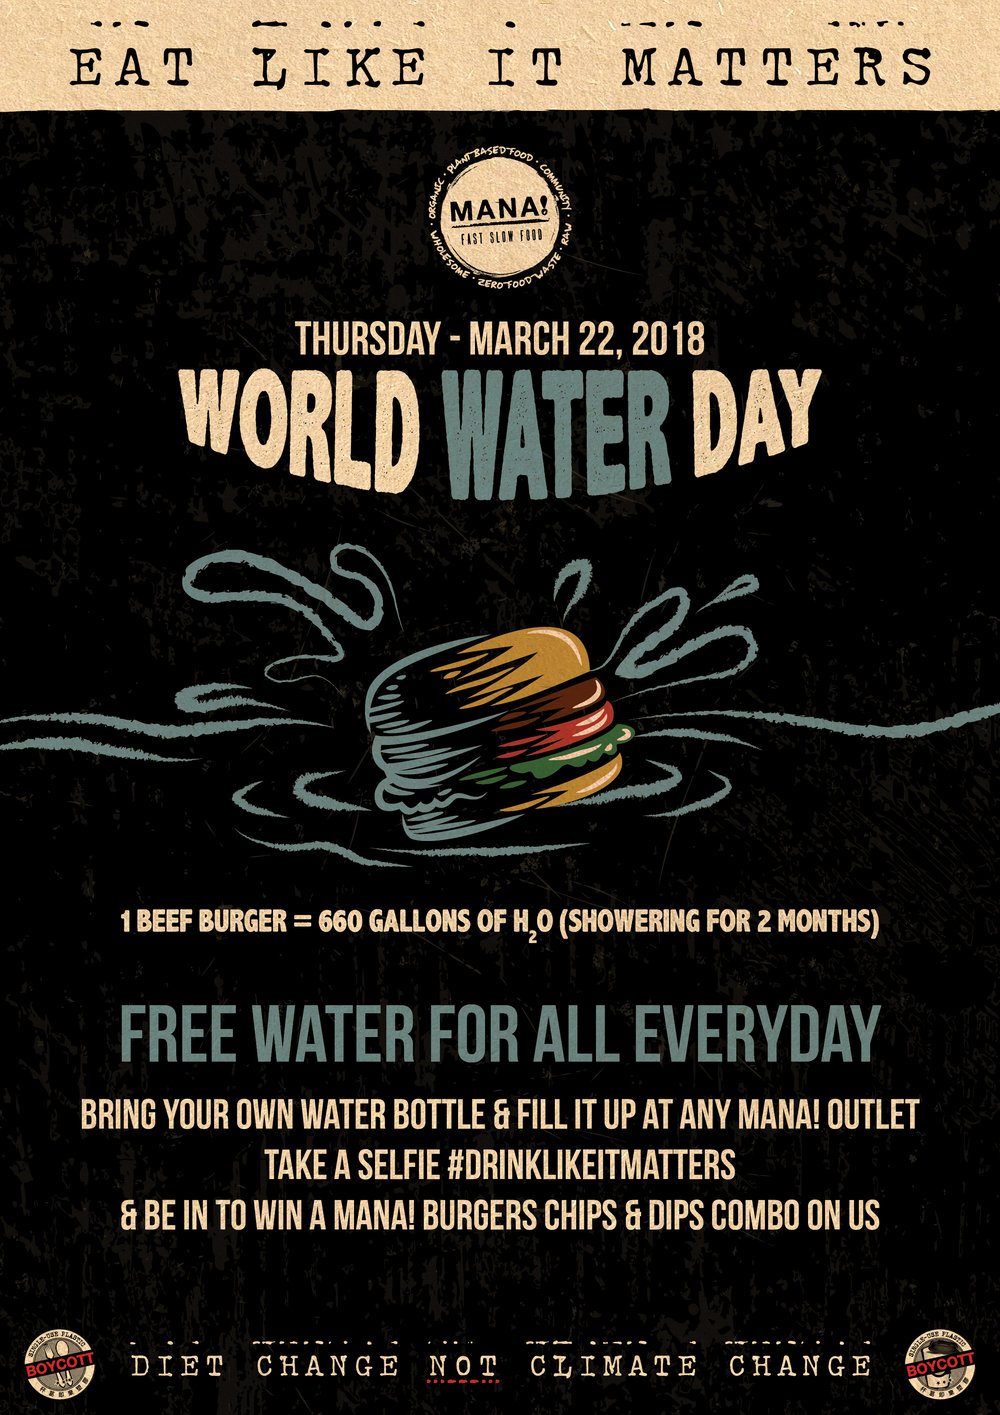 MANA! Community Days (World Water Day) - Poster 01D-01.jpg